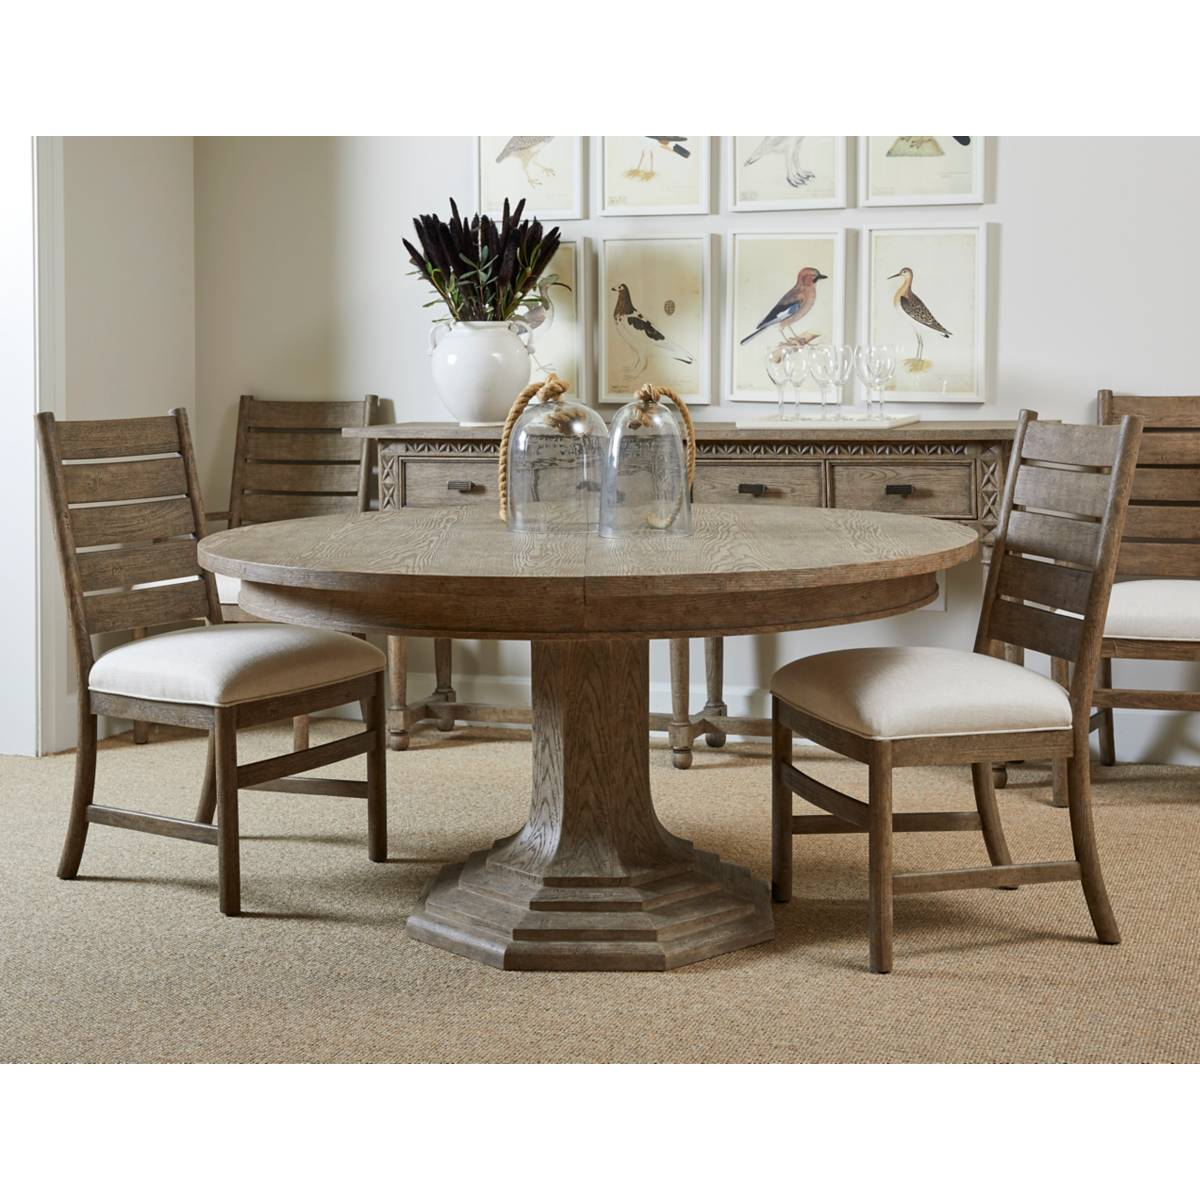 Portico 54 Round Dining Table Stanley Furniture